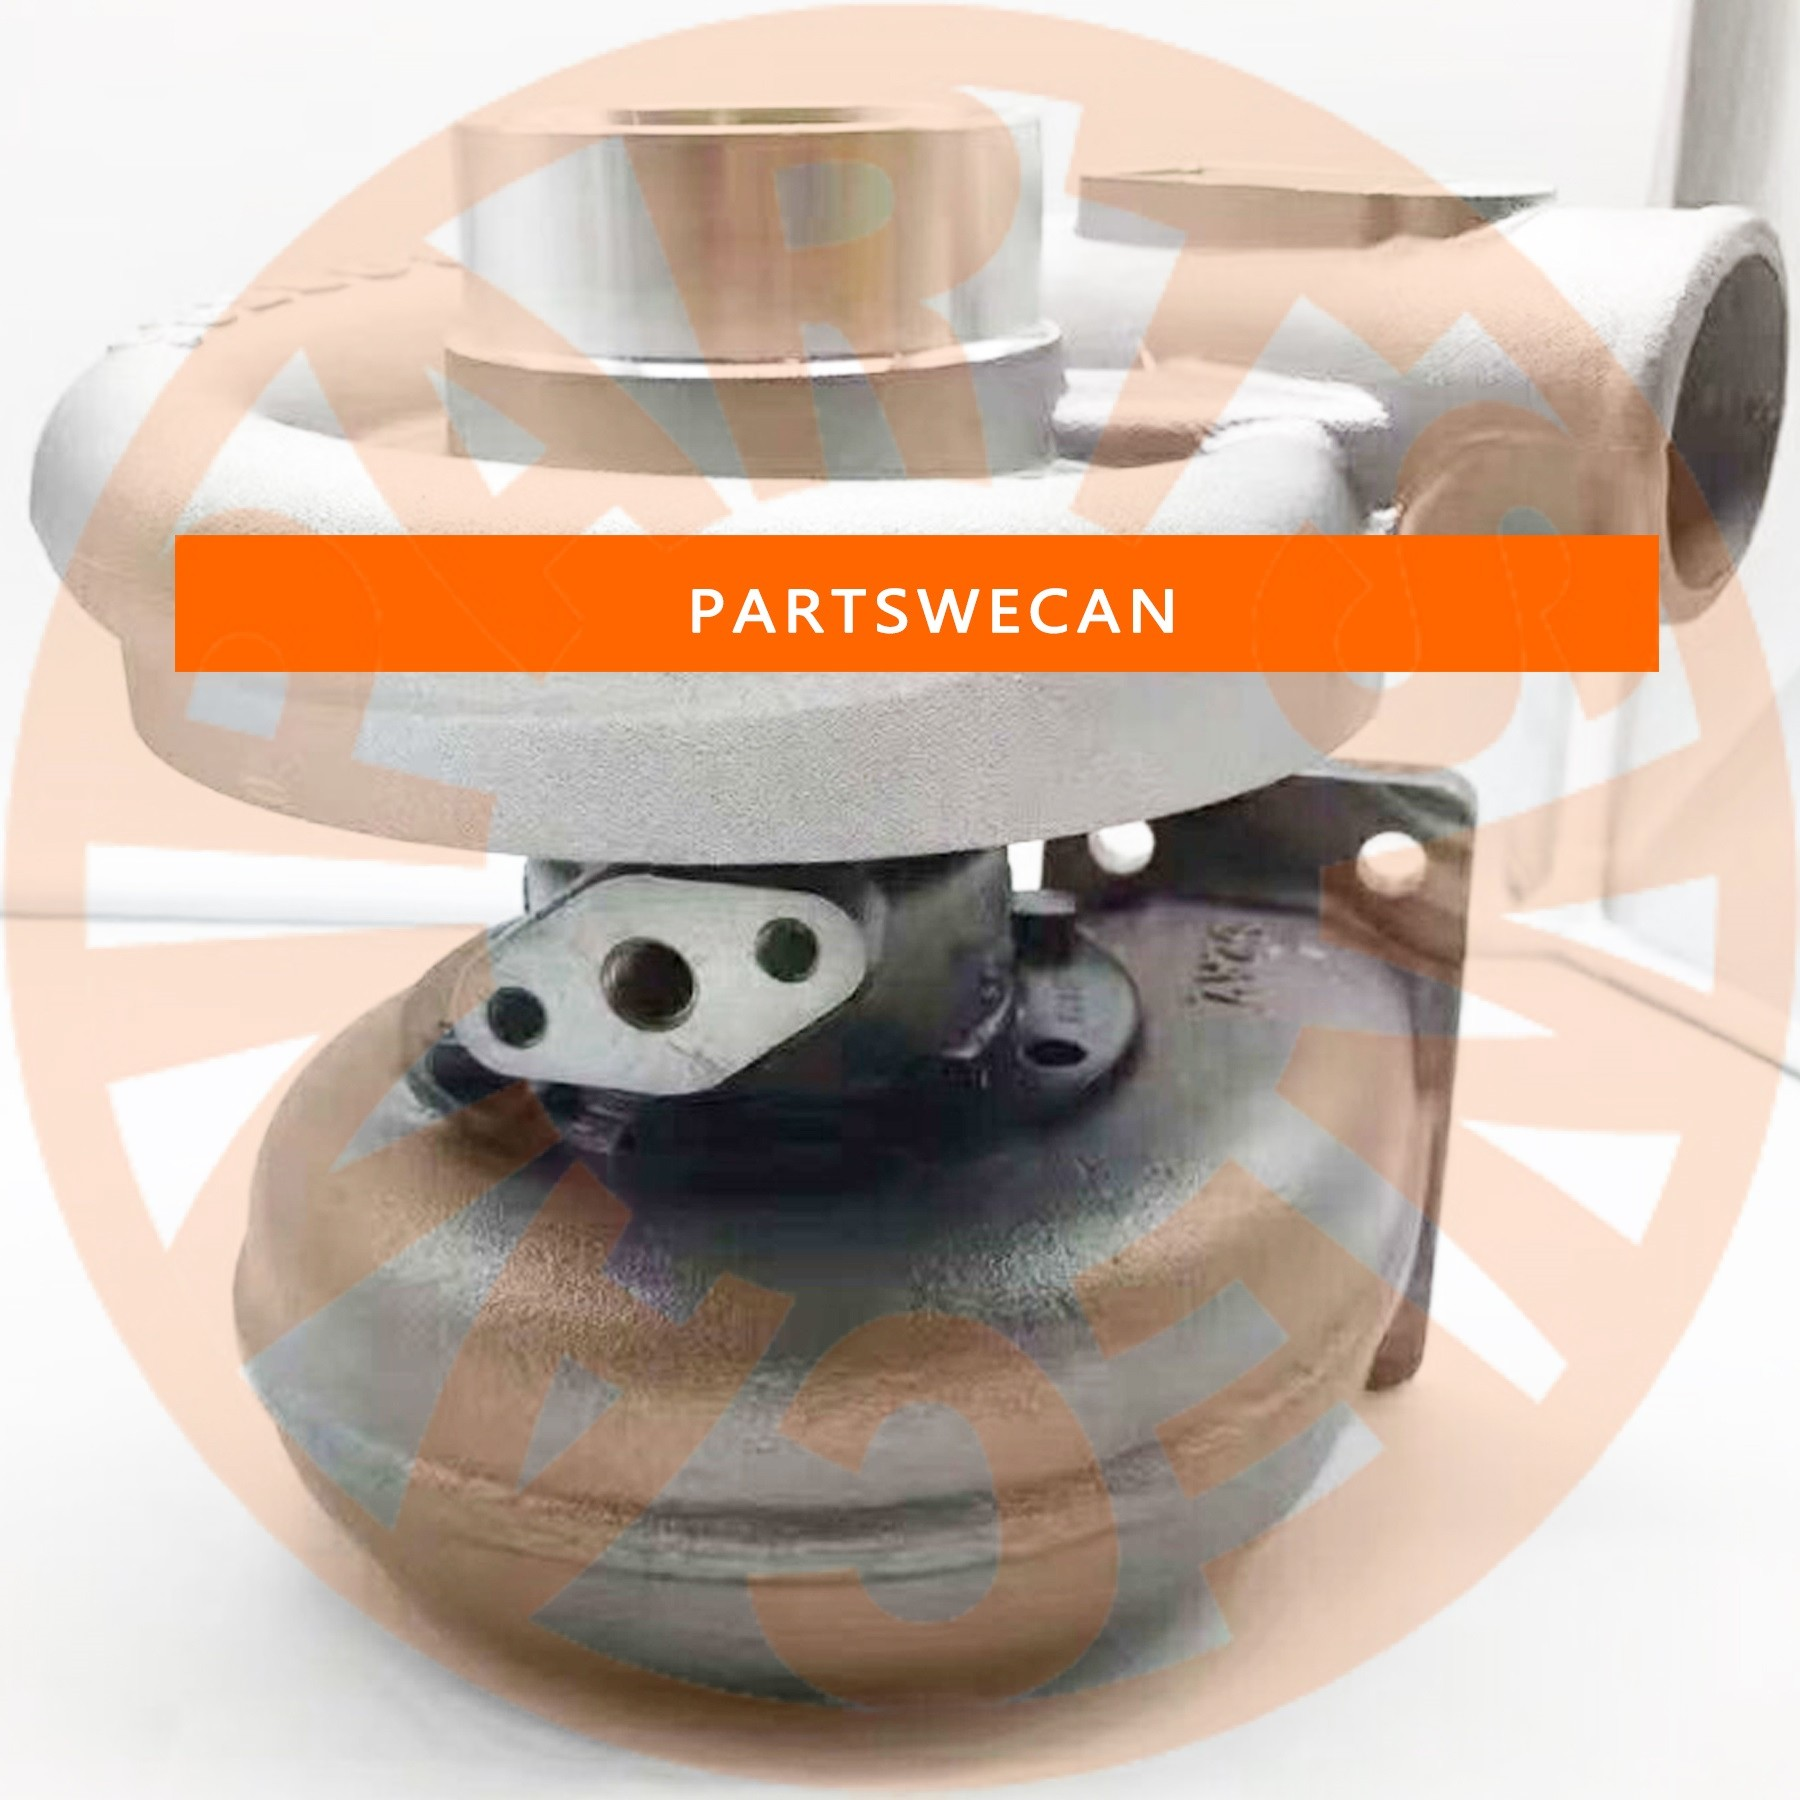 TURBOCHARGER DAEWOO DB58 ENGINE DH220-7 EXCAVATOR AFTERMARKET PARTS